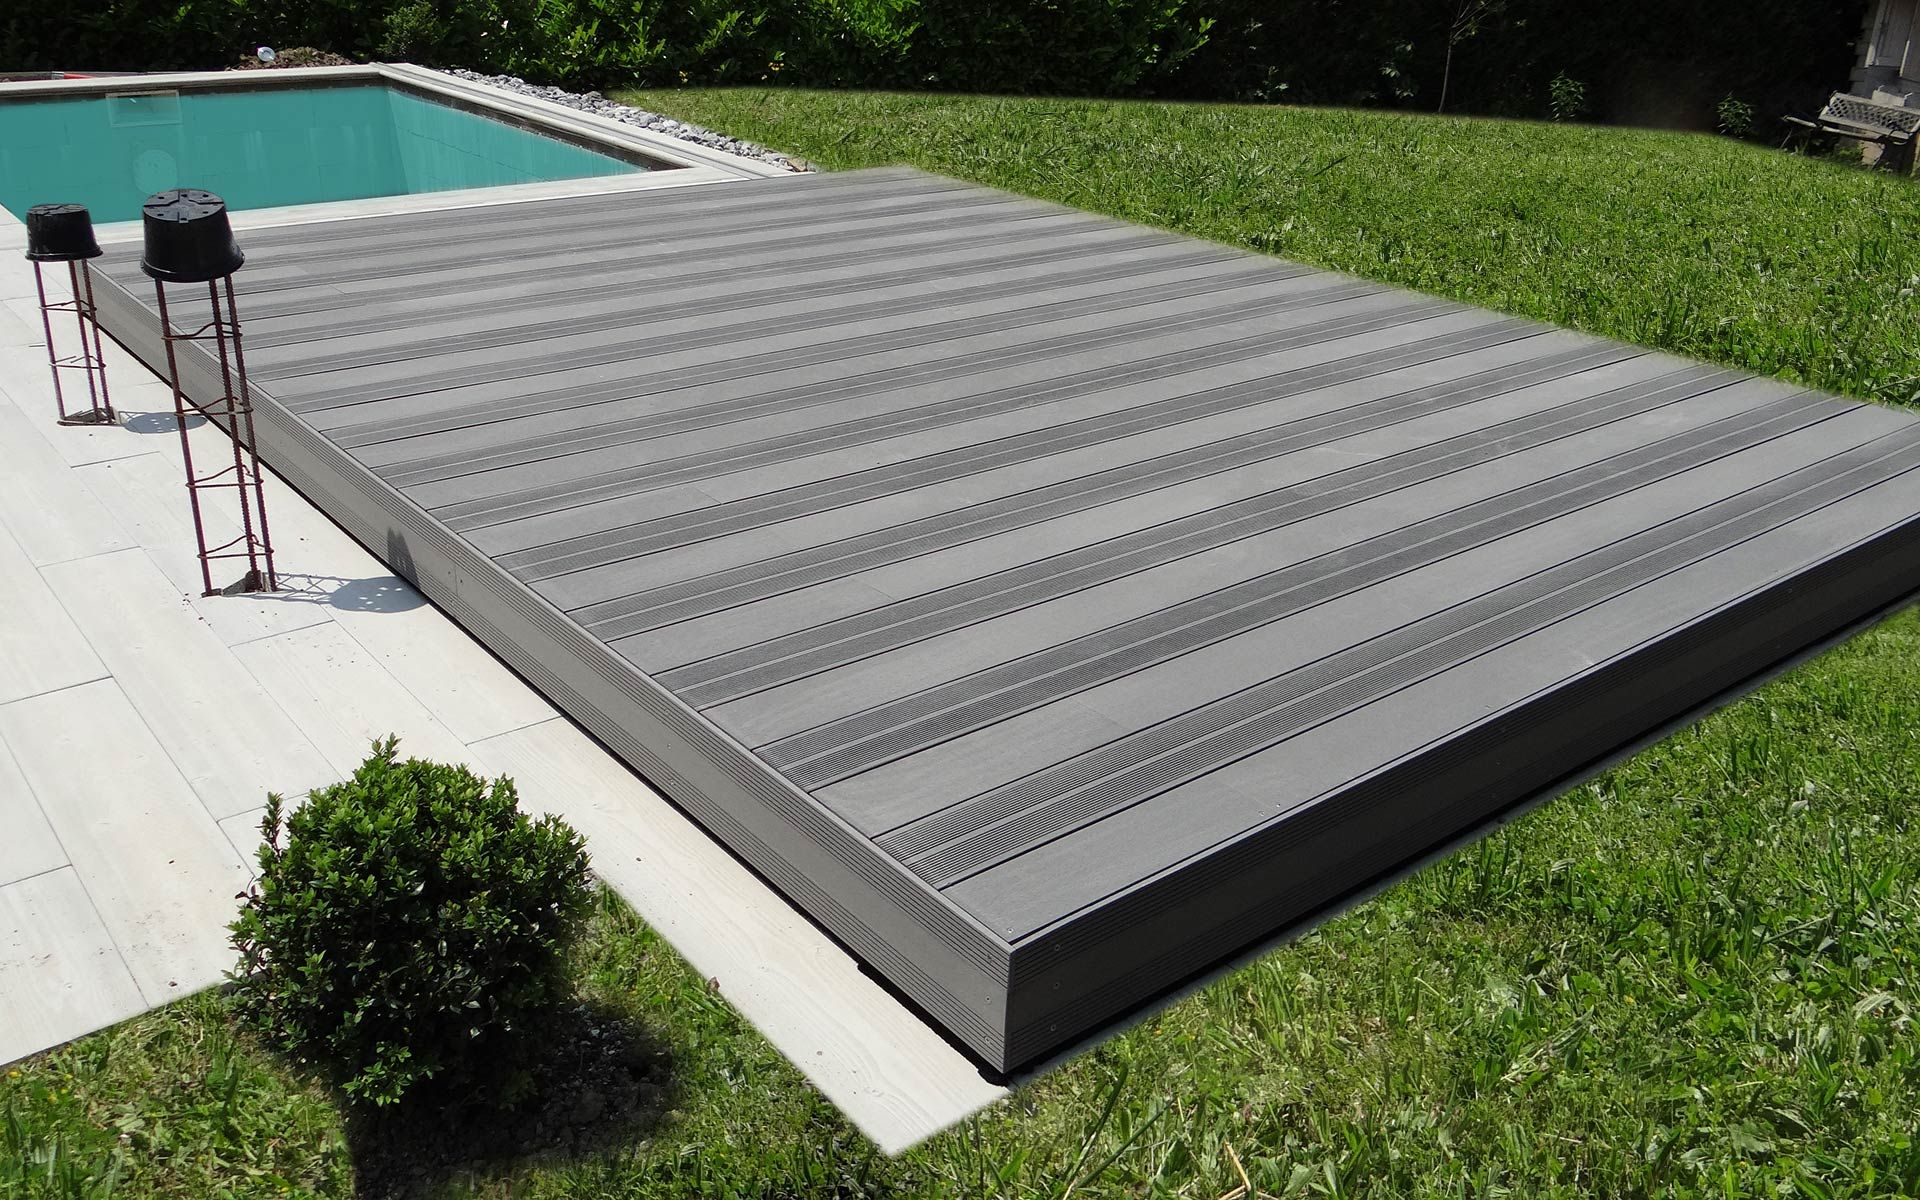 Plancher coulissant terrasse mobile piscine plancher for Couvercle local technique piscine